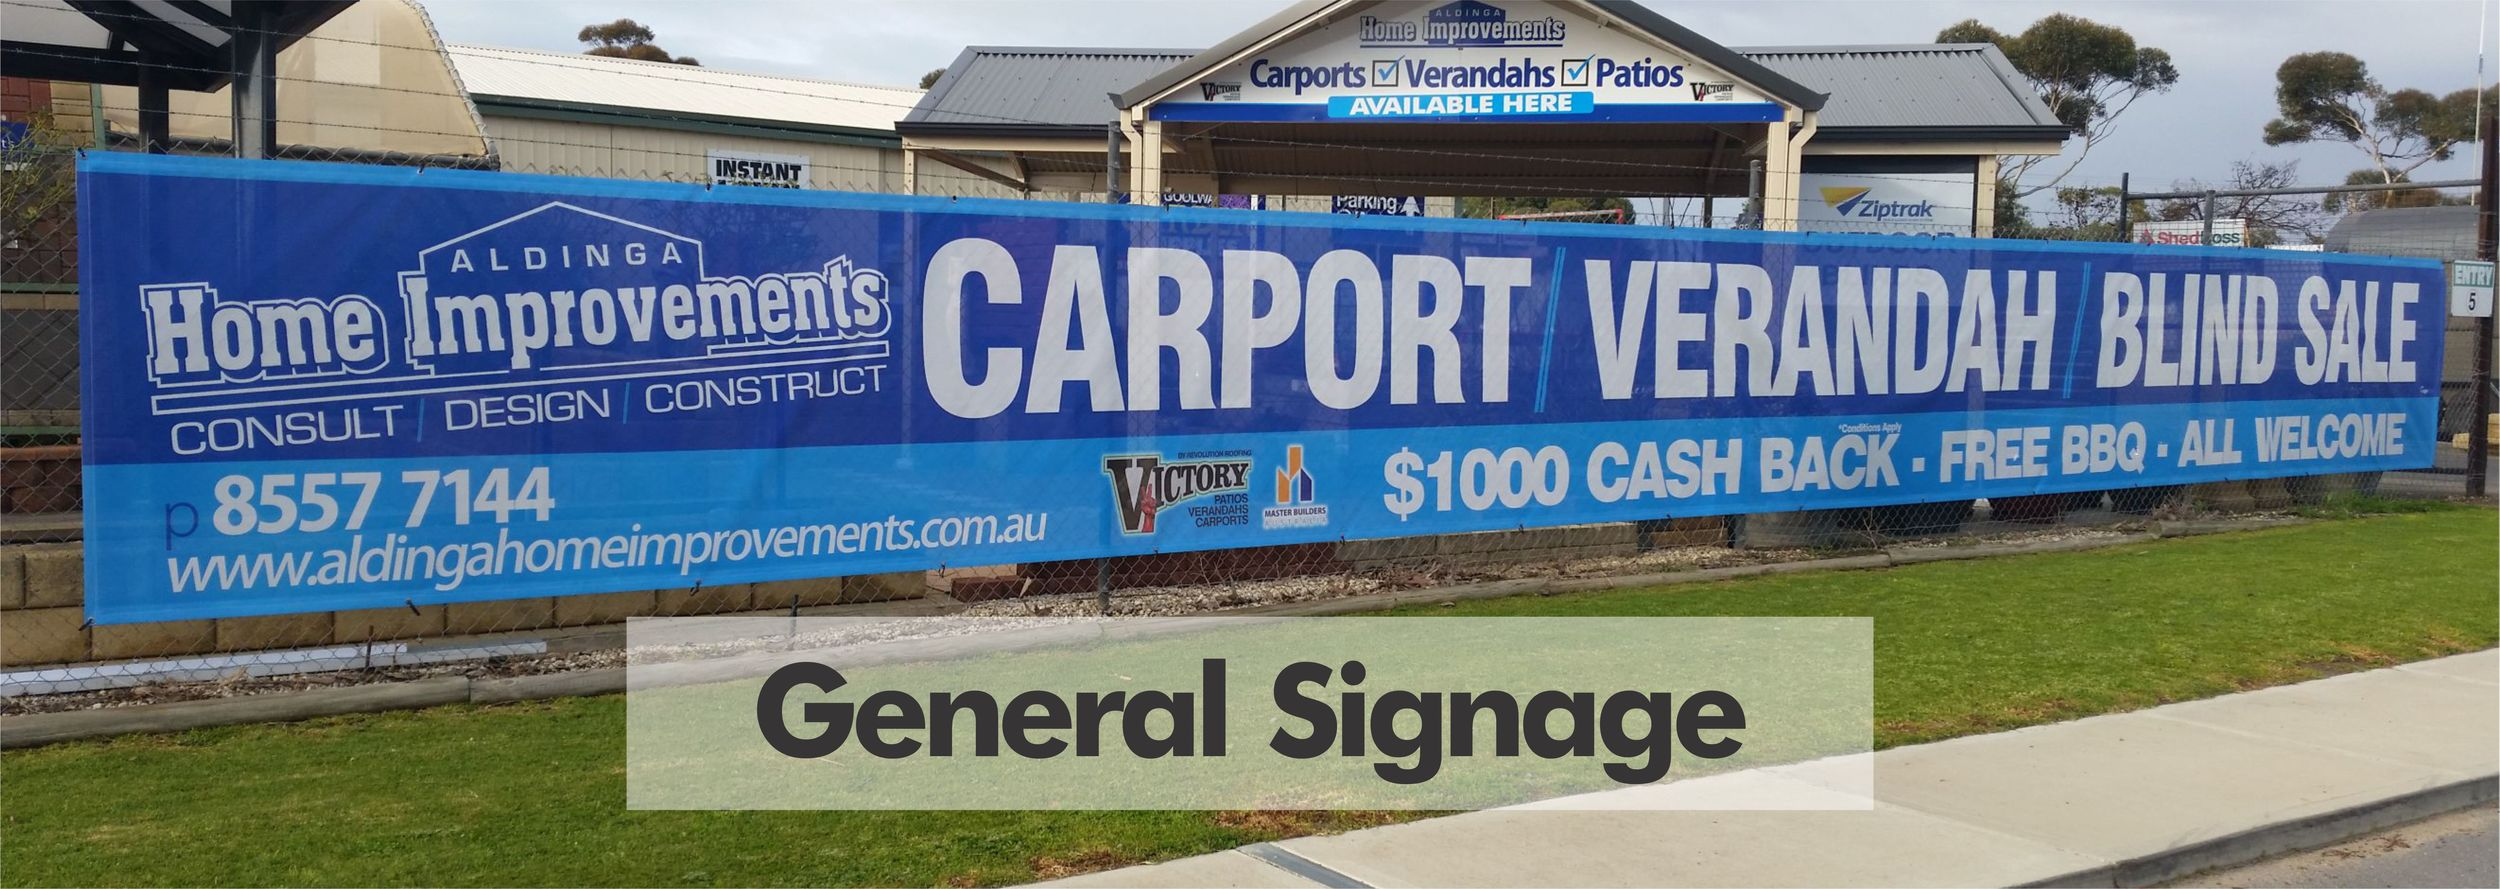 General Signage - Sign Colour - Signcolour - Aldinga Beach - Aldinga - Lonsdale Signage - Lonsdale signs - McLaren Vale sign - Victor Harbor Sign - Willunga Sign - Morphett Vale Sign - vehicle signage - shop front signage.jpg